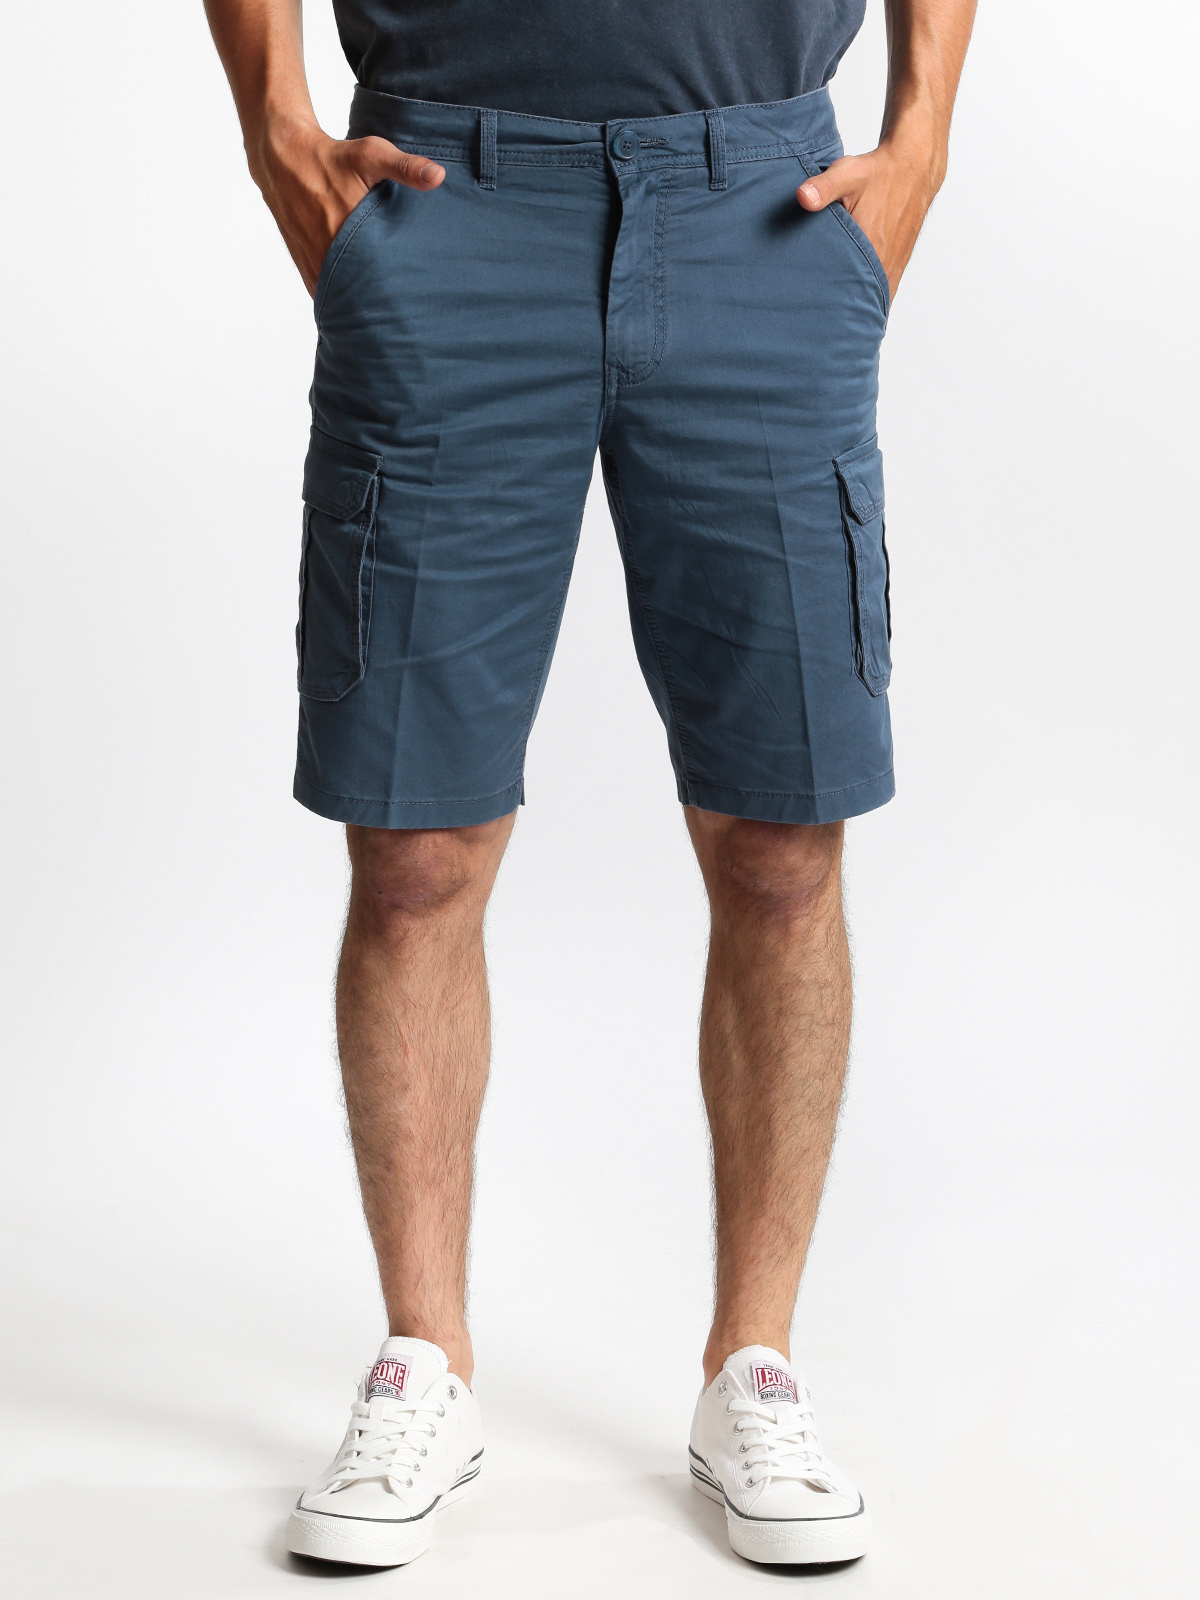 Bermuda Cotton With Side Pockets